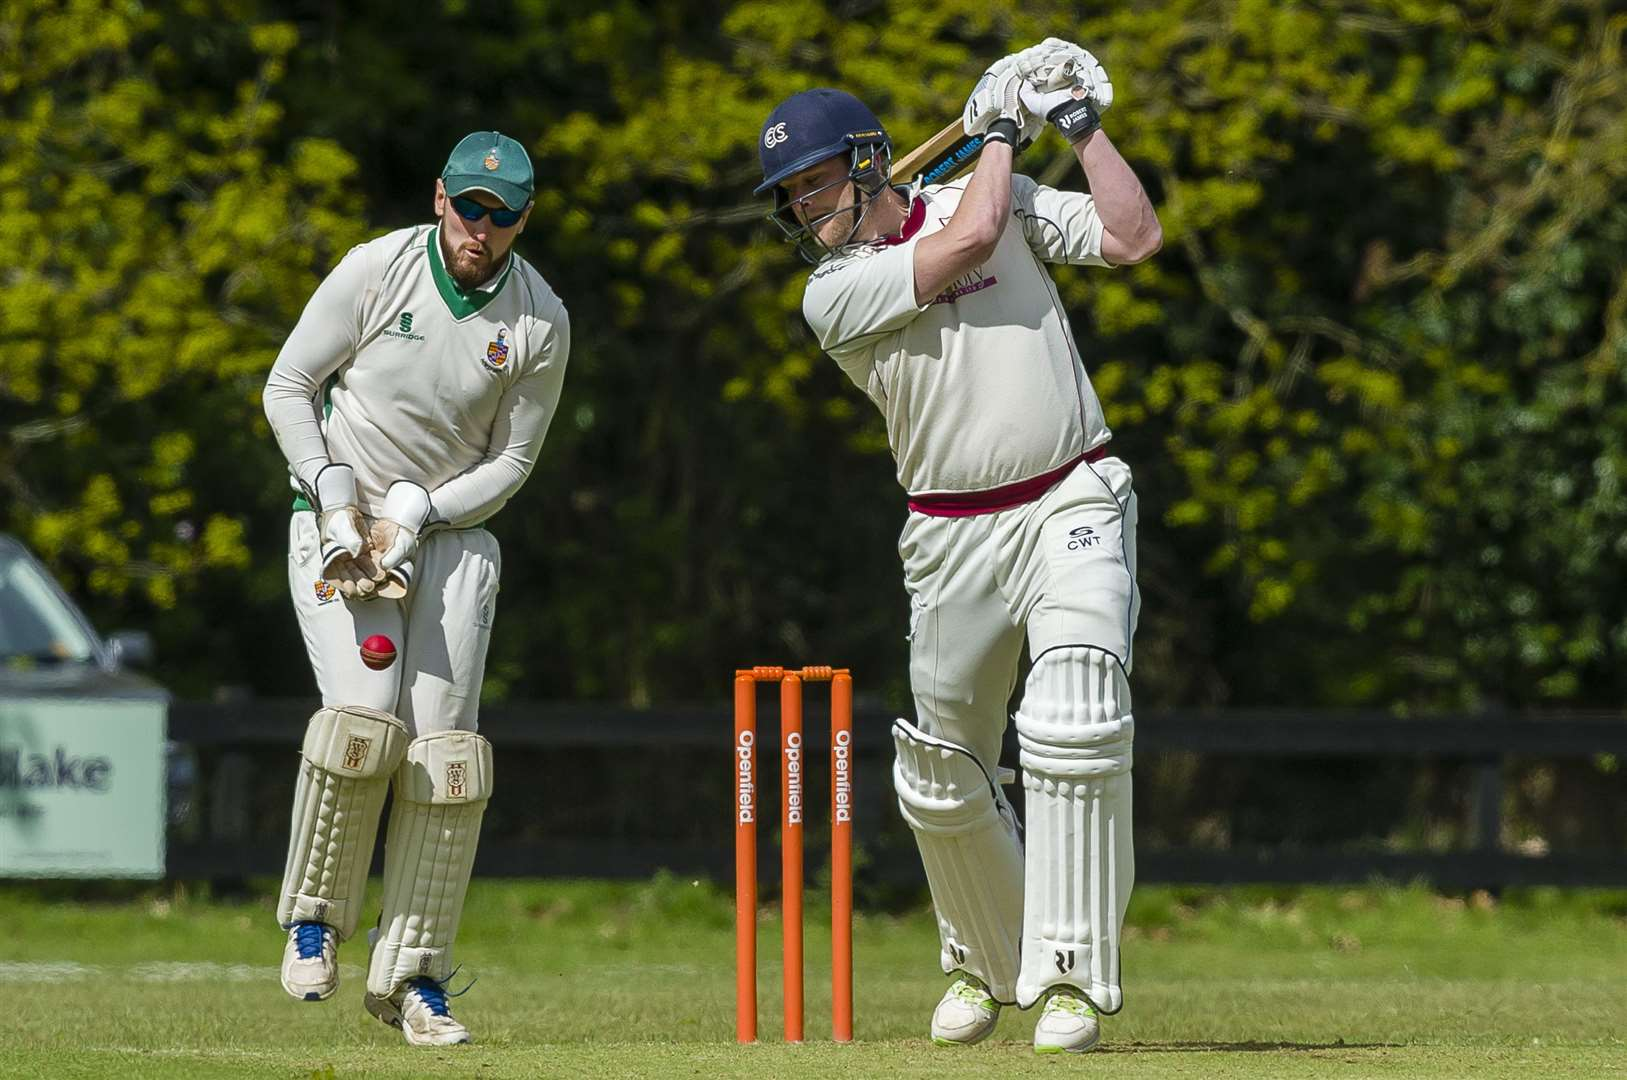 Charlie Tunstall of Old Buckenham bats during the Alliance Premier League match between Old Buckenham and Horsford II...Picture: Mark Bullimore Photography. (11524622)